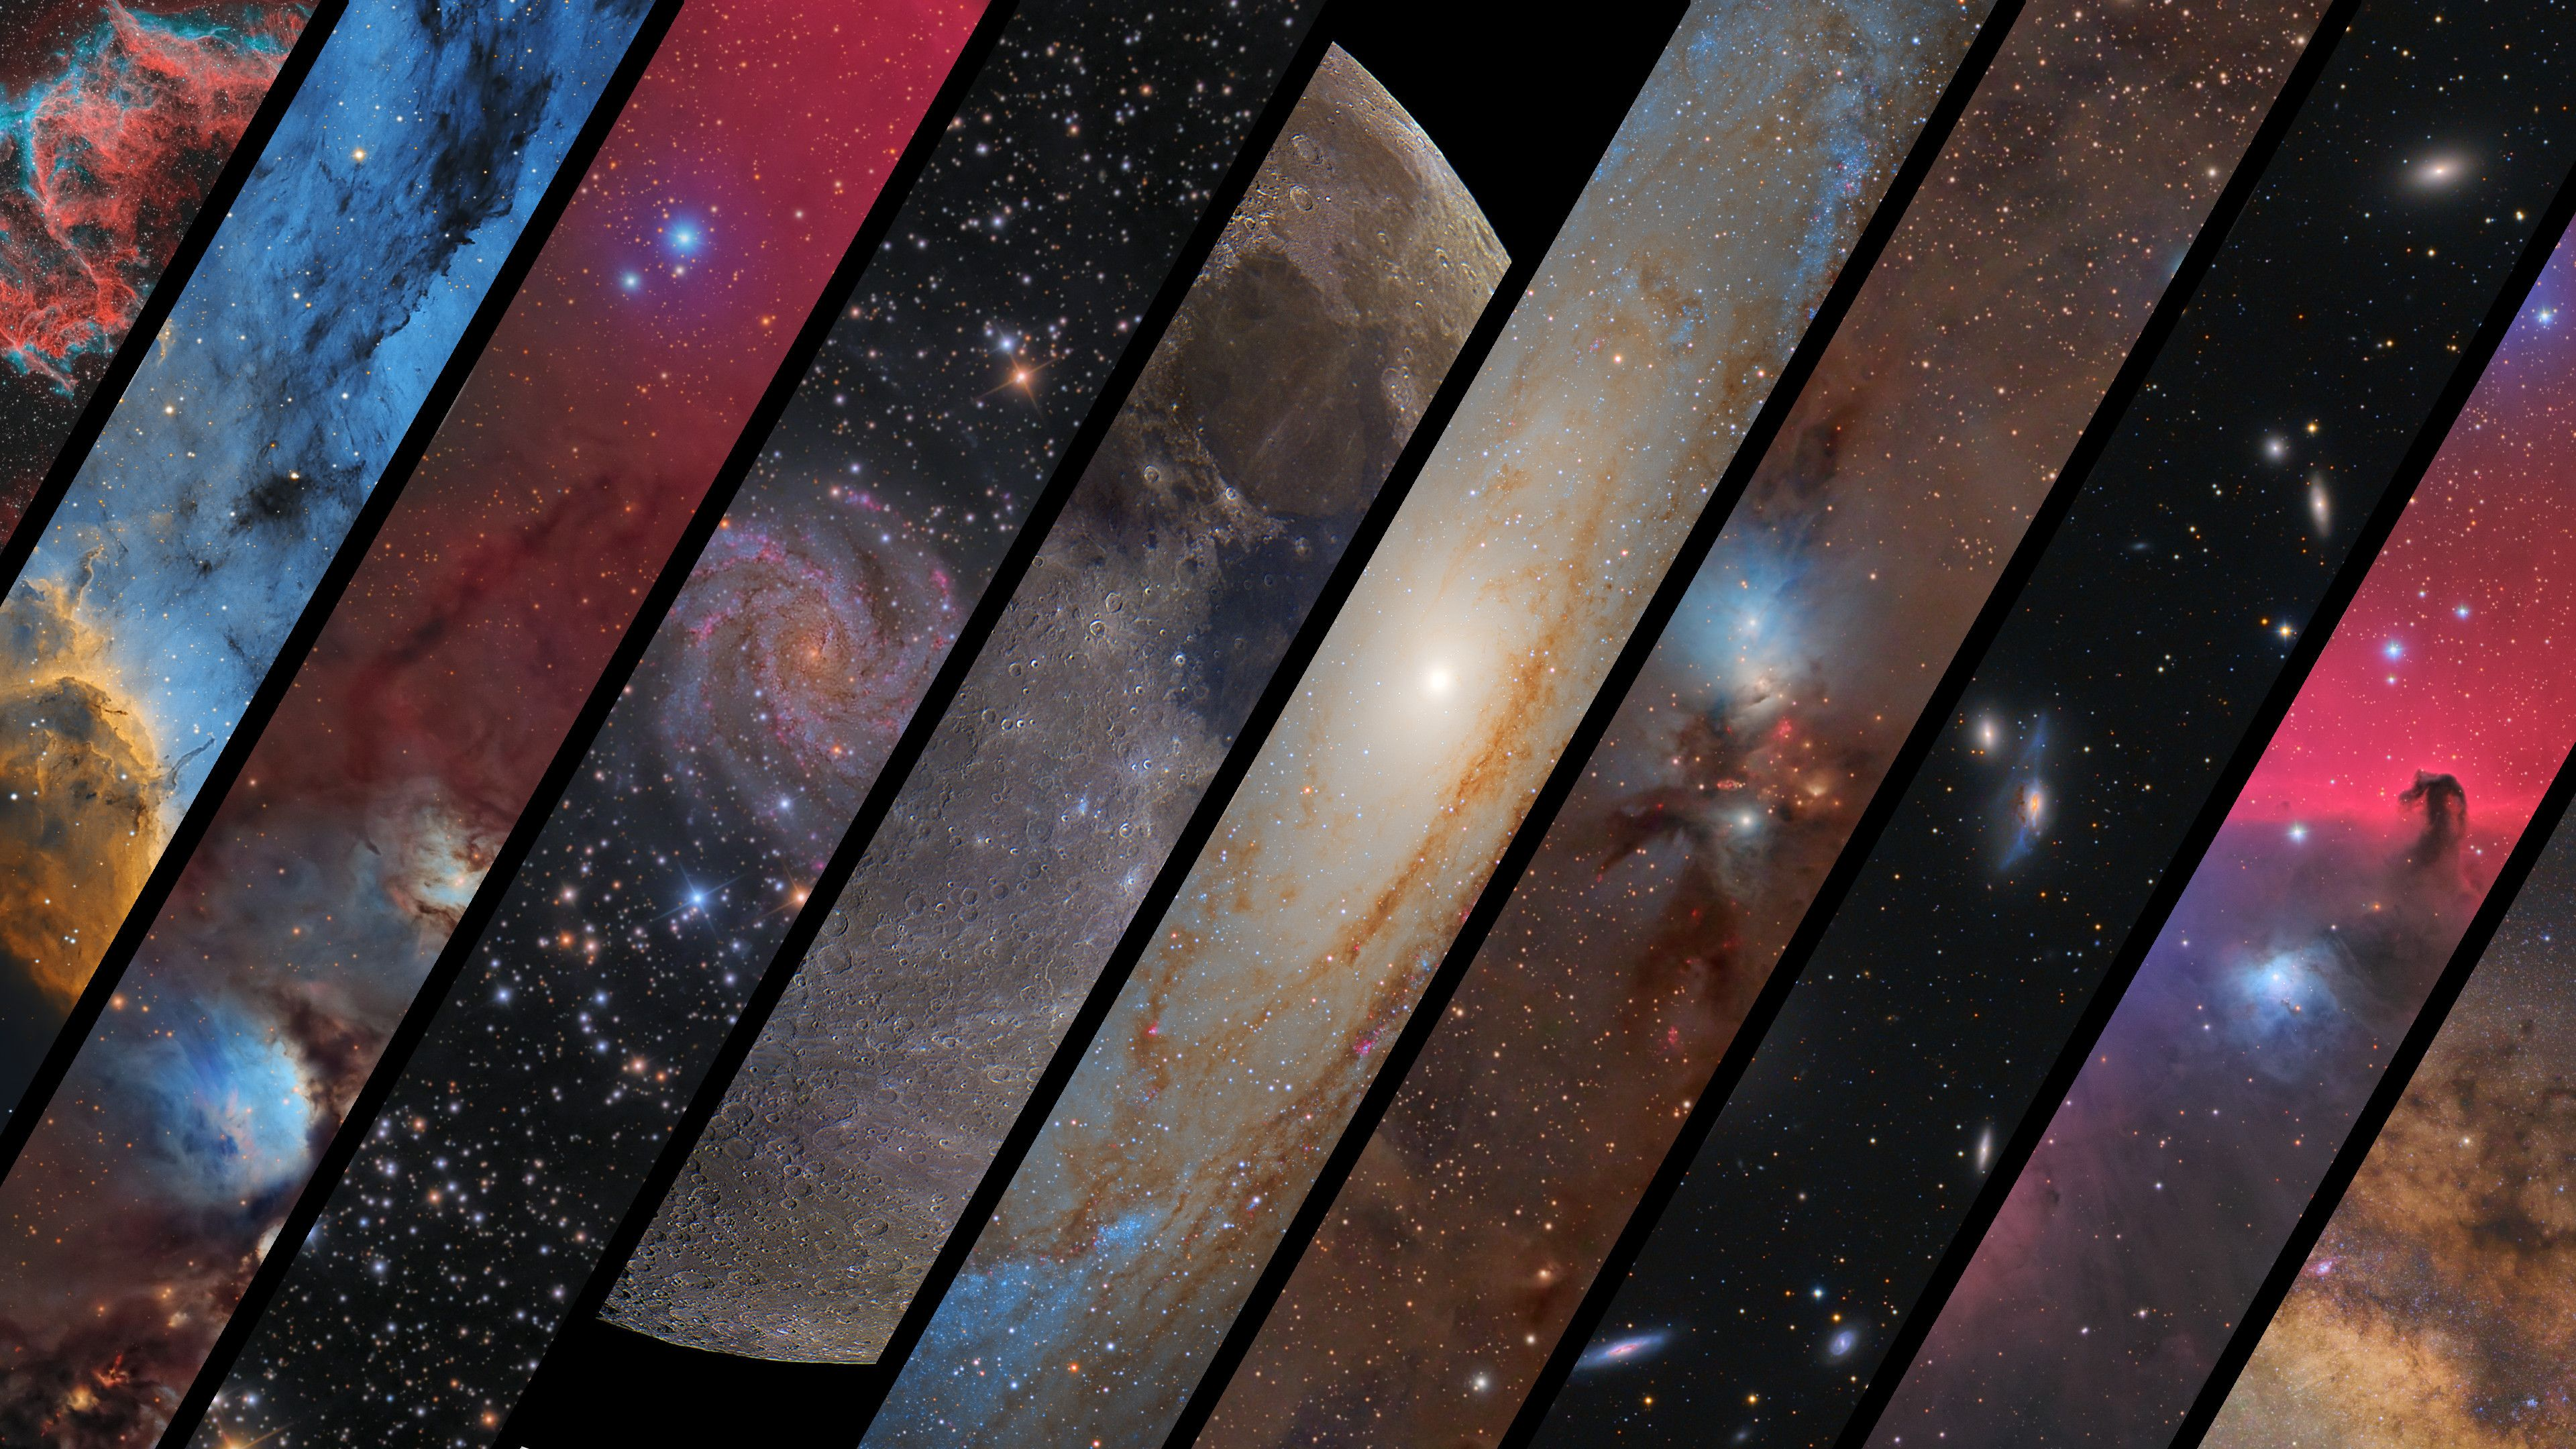 4k Astronomy Wallpapers Top Free 4k Astronomy Backgrounds